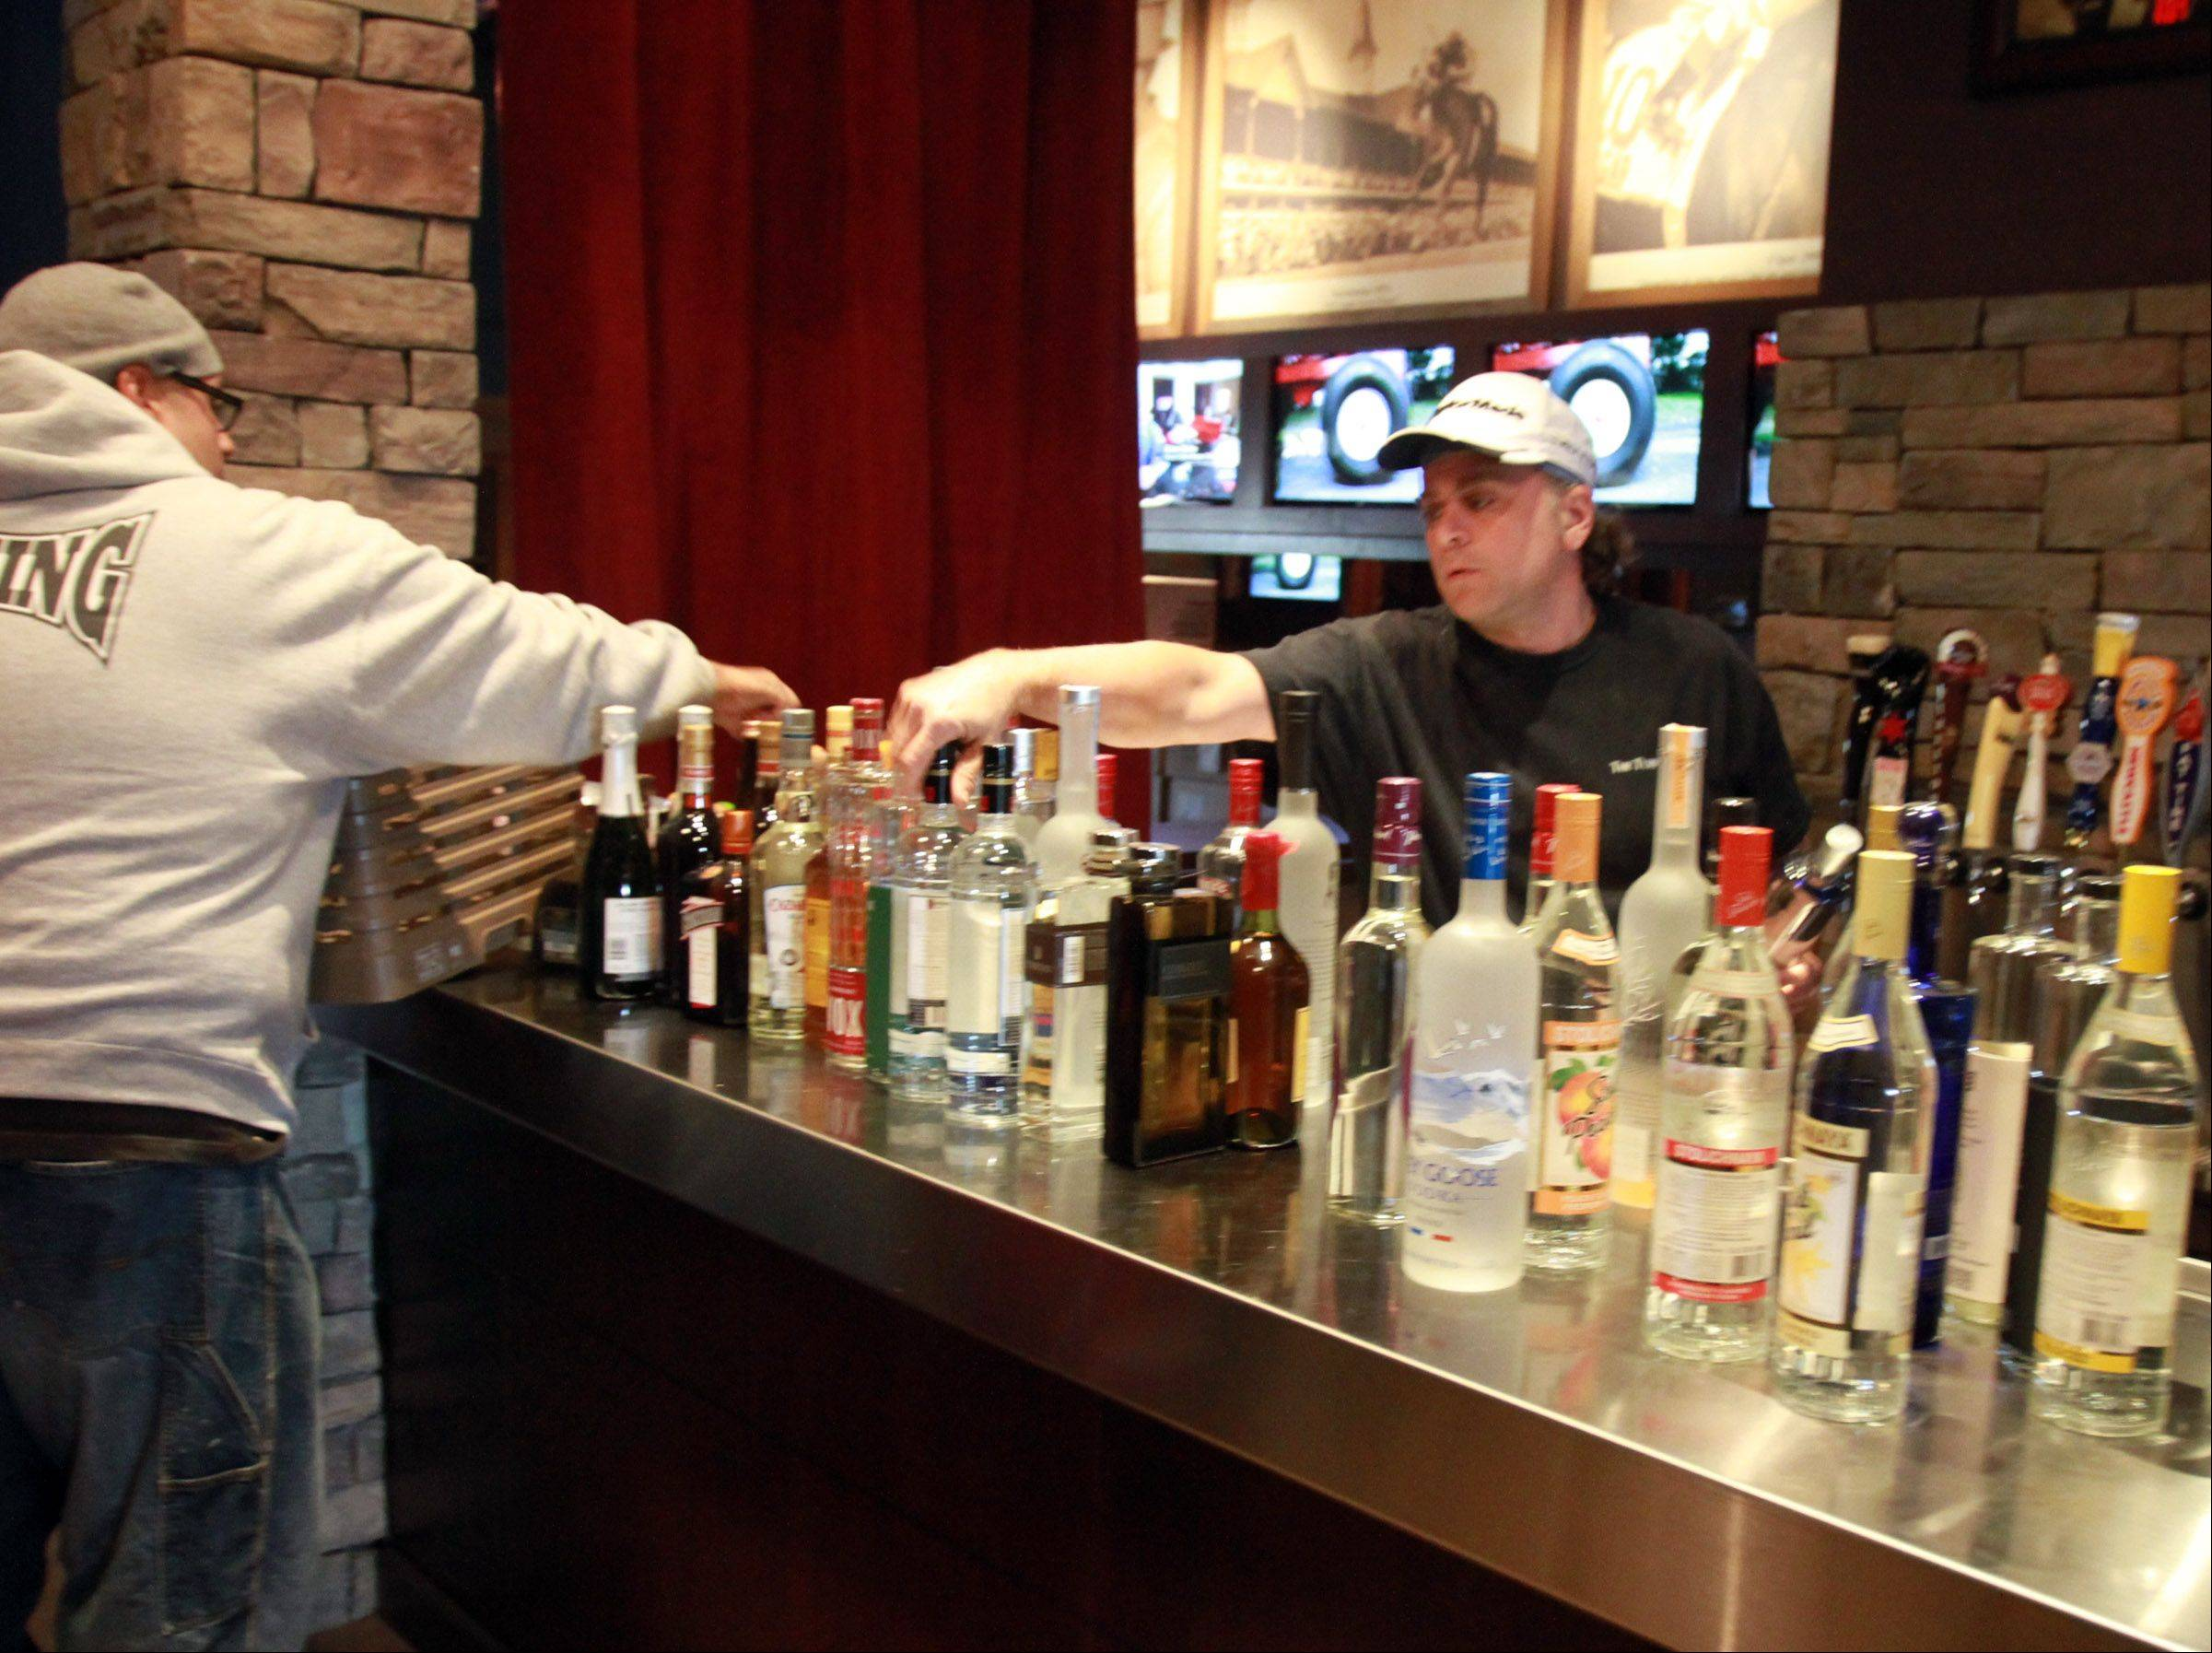 The Saddle Room co-owner Parker Grabowski, right, and server/bartender Porfirio Salamanca prepare the bar area of the new off-track betting restaurant for its opening Friday at 2559 Pratum Ave. in Hoffman Estates.